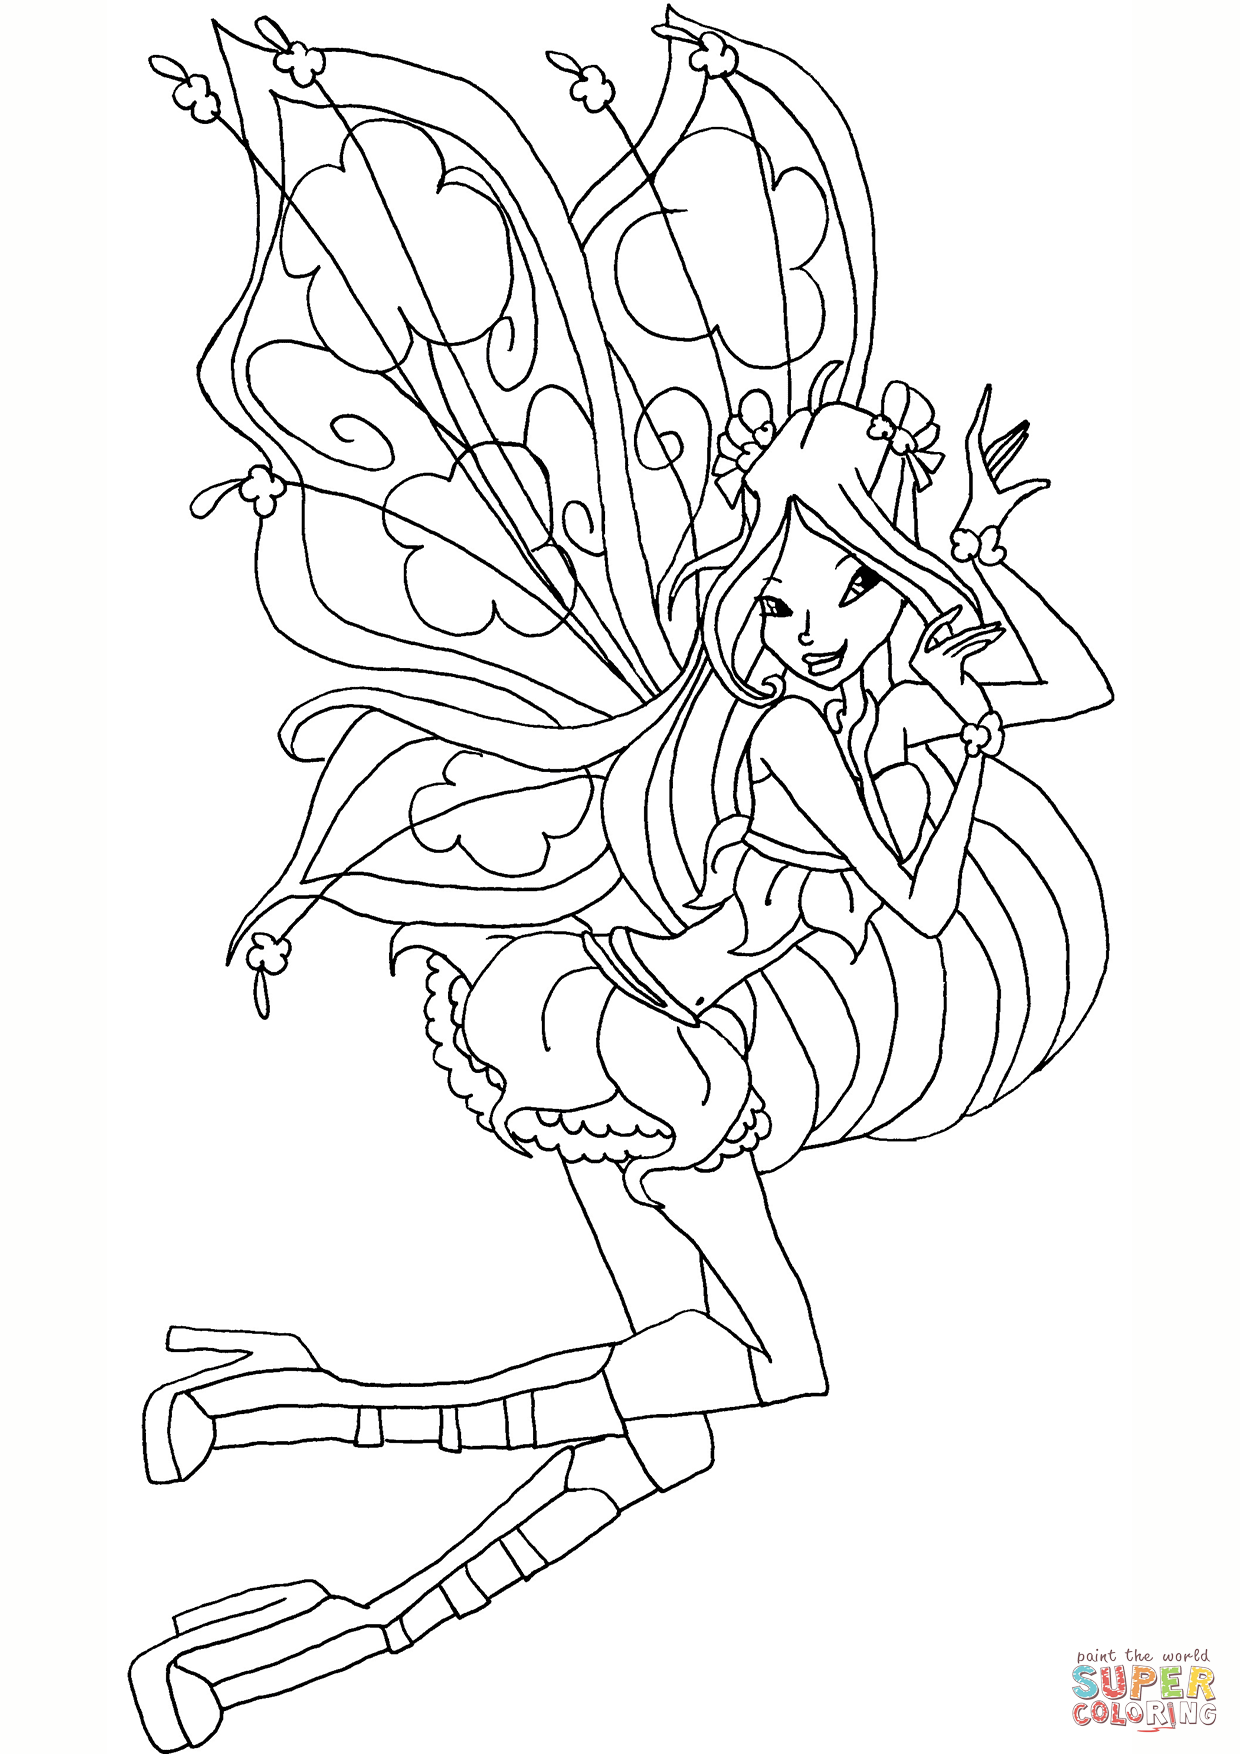 winx club colouring pages believix winx club all colorear winx club believix winx believix colouring pages club